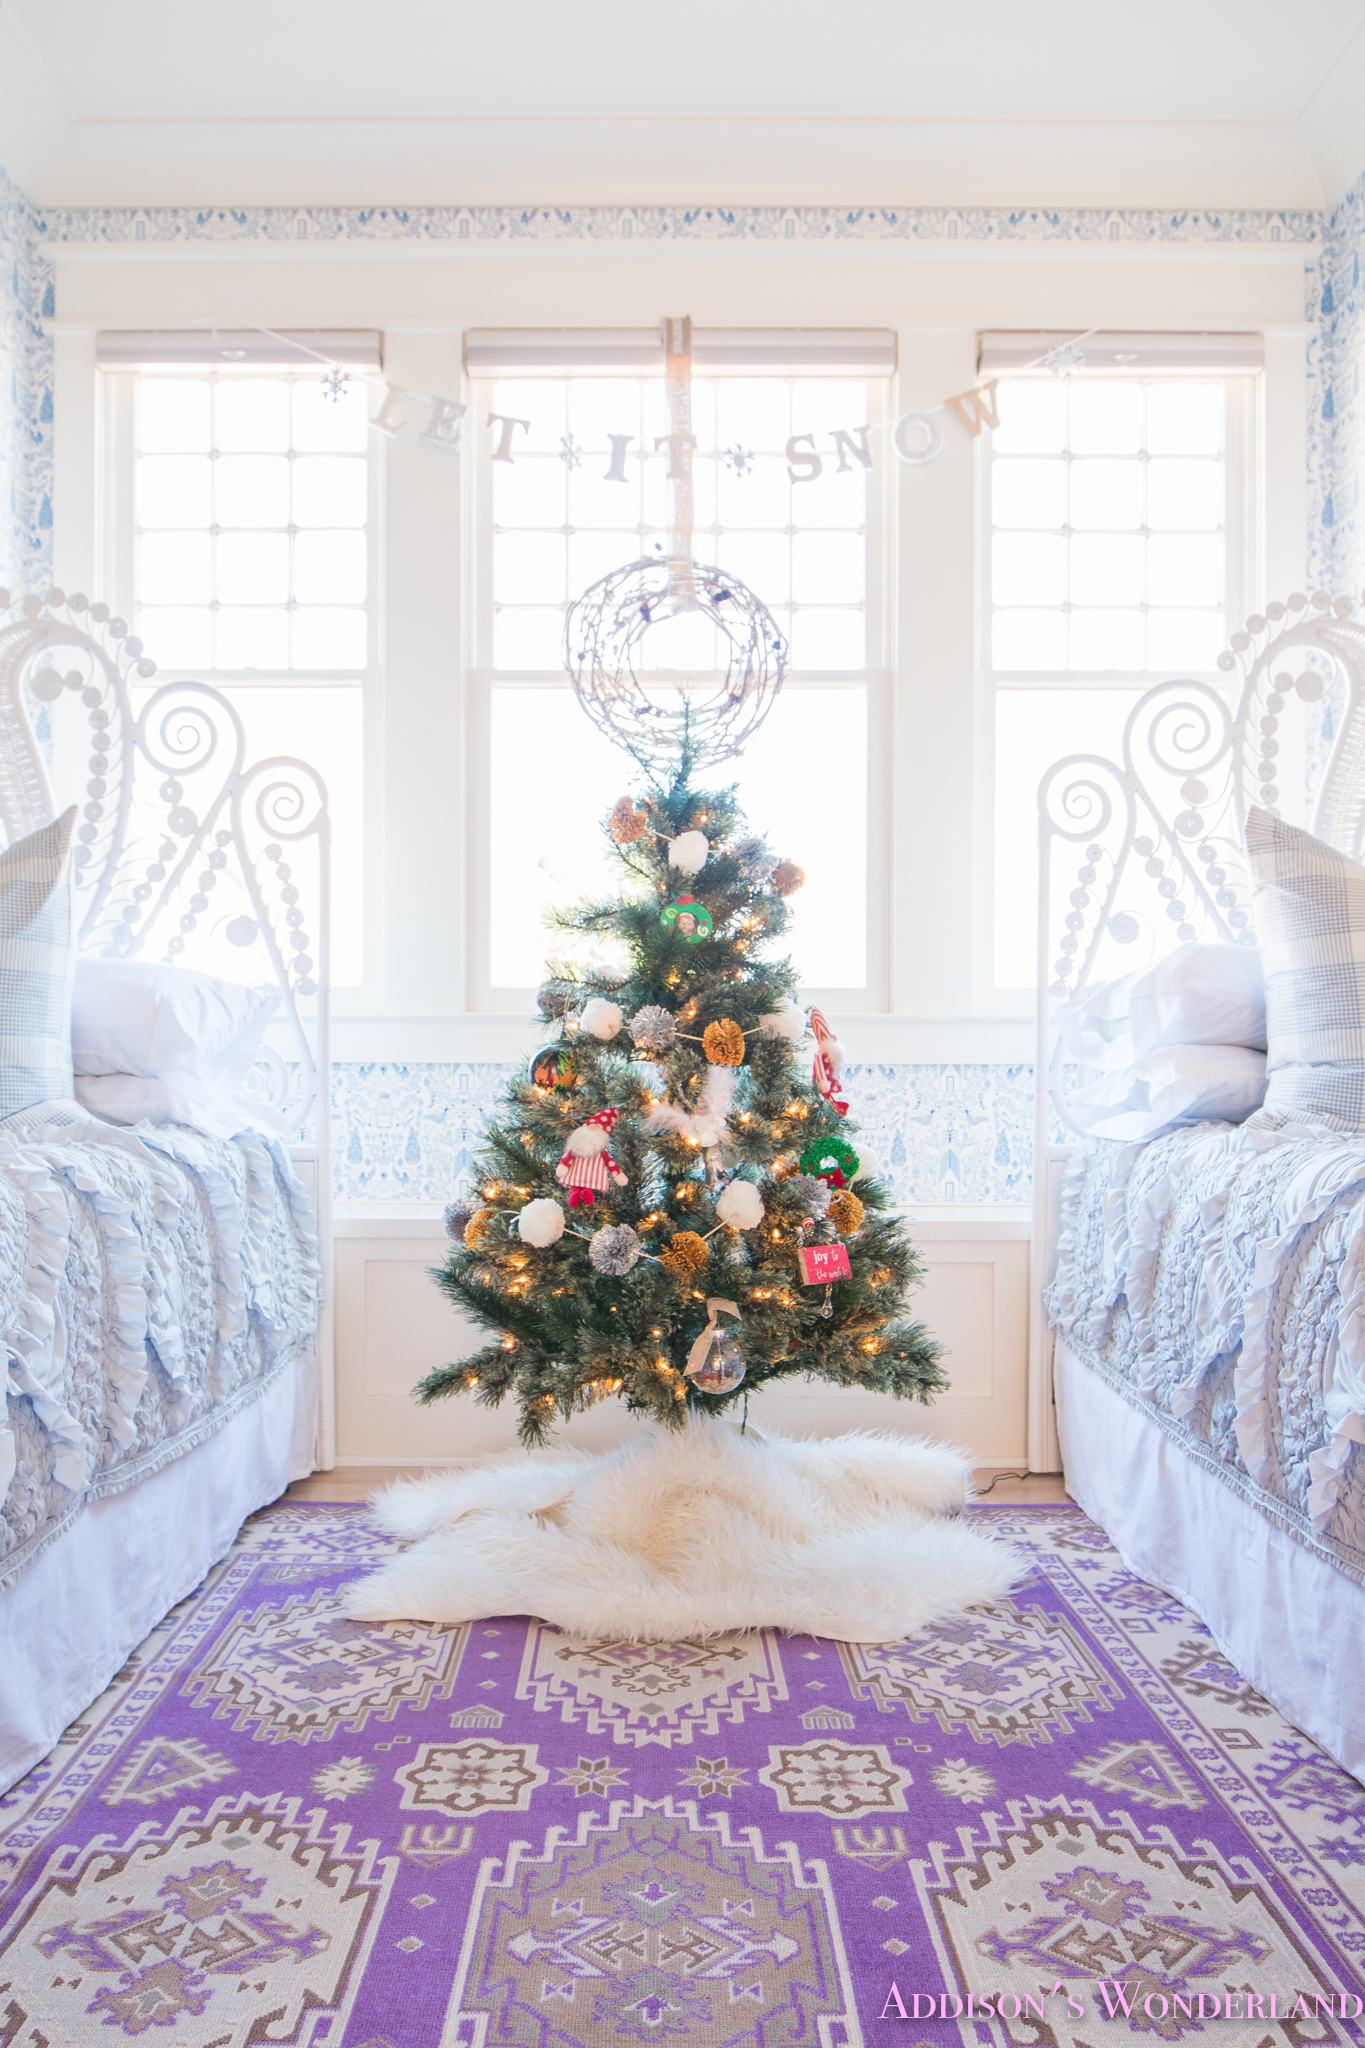 Christmas Bedroom Background A Blue And White Little Girl 39s Bedroom Decked Out For